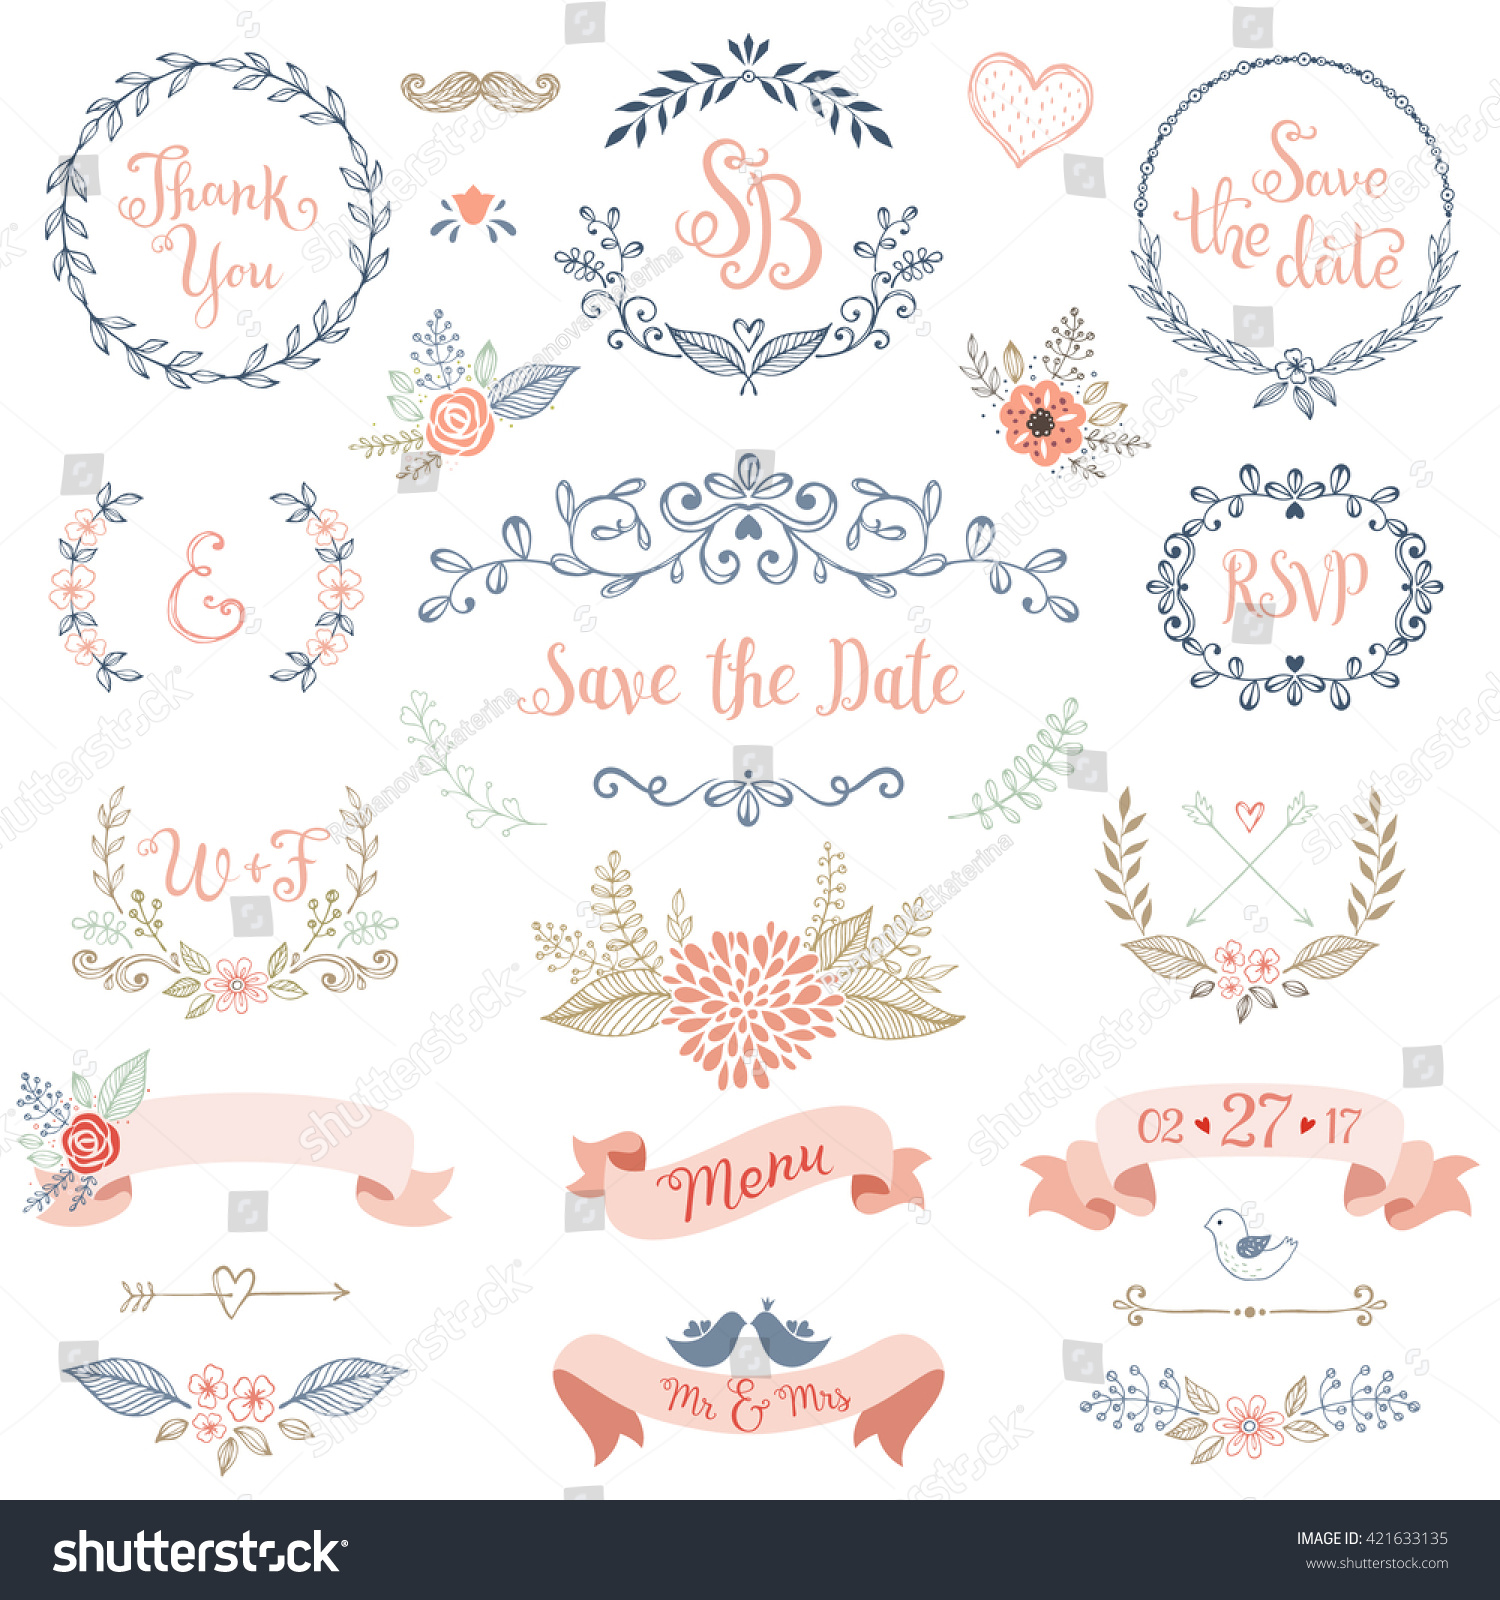 Rustic hand sketched wedding elements set. Floral doodles, branches, flowers, birds, laurels, banners and frames. Good for Save the Date cards, Wedding invitations, Thank You cards and RSVP cards. #421633135